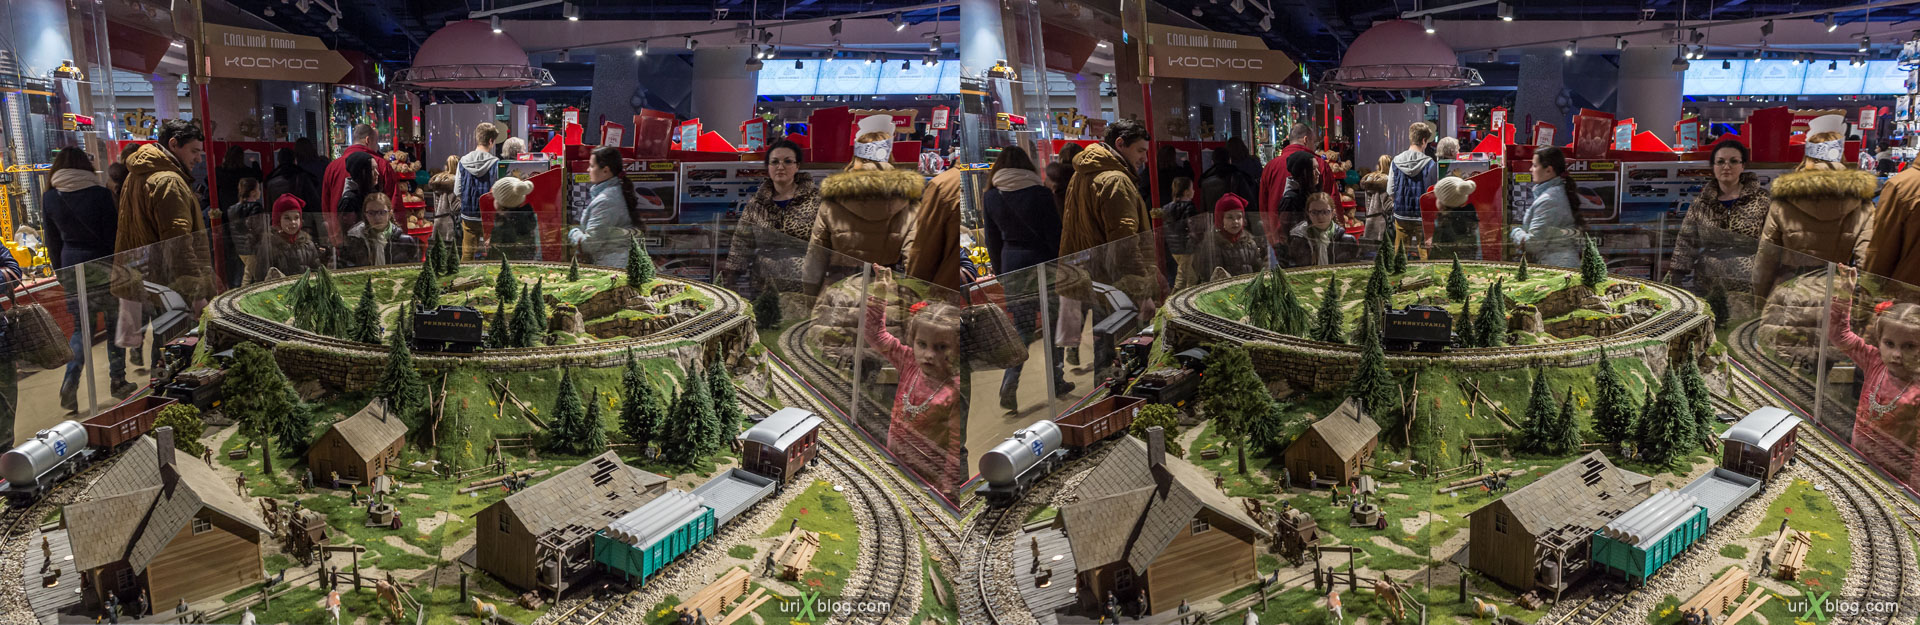 landscape, Hamleys-World, Central Childrens World, Shop, Store, Lubyanskaya square, Moscow, Russia, 3D, stereo pair, cross-eyed, crossview, cross view stereo pair, stereoscopic, 2015